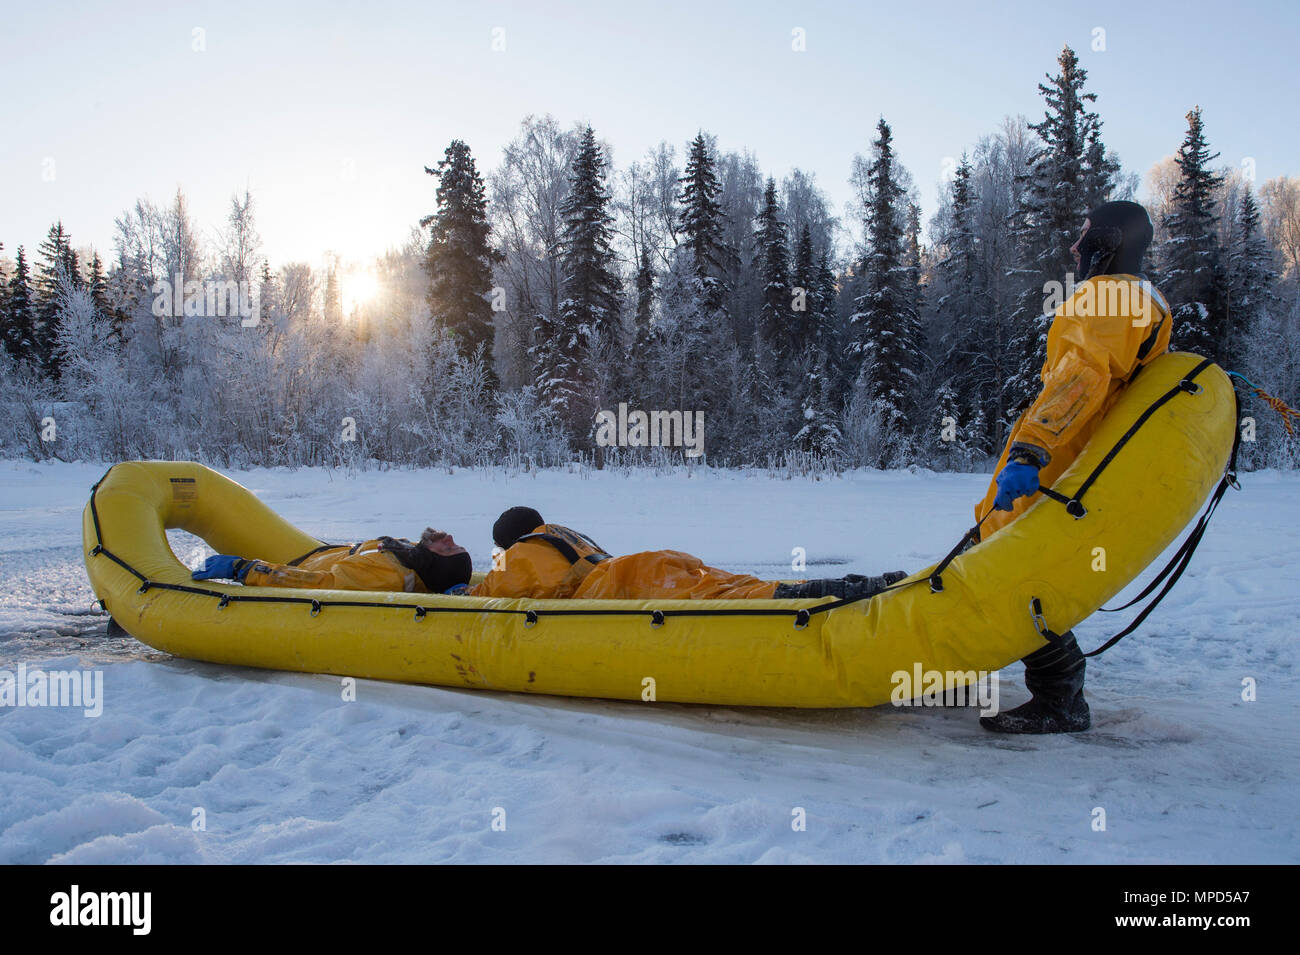 Self Inflatable Stock Photos & Self Inflatable Stock Images - Alamy